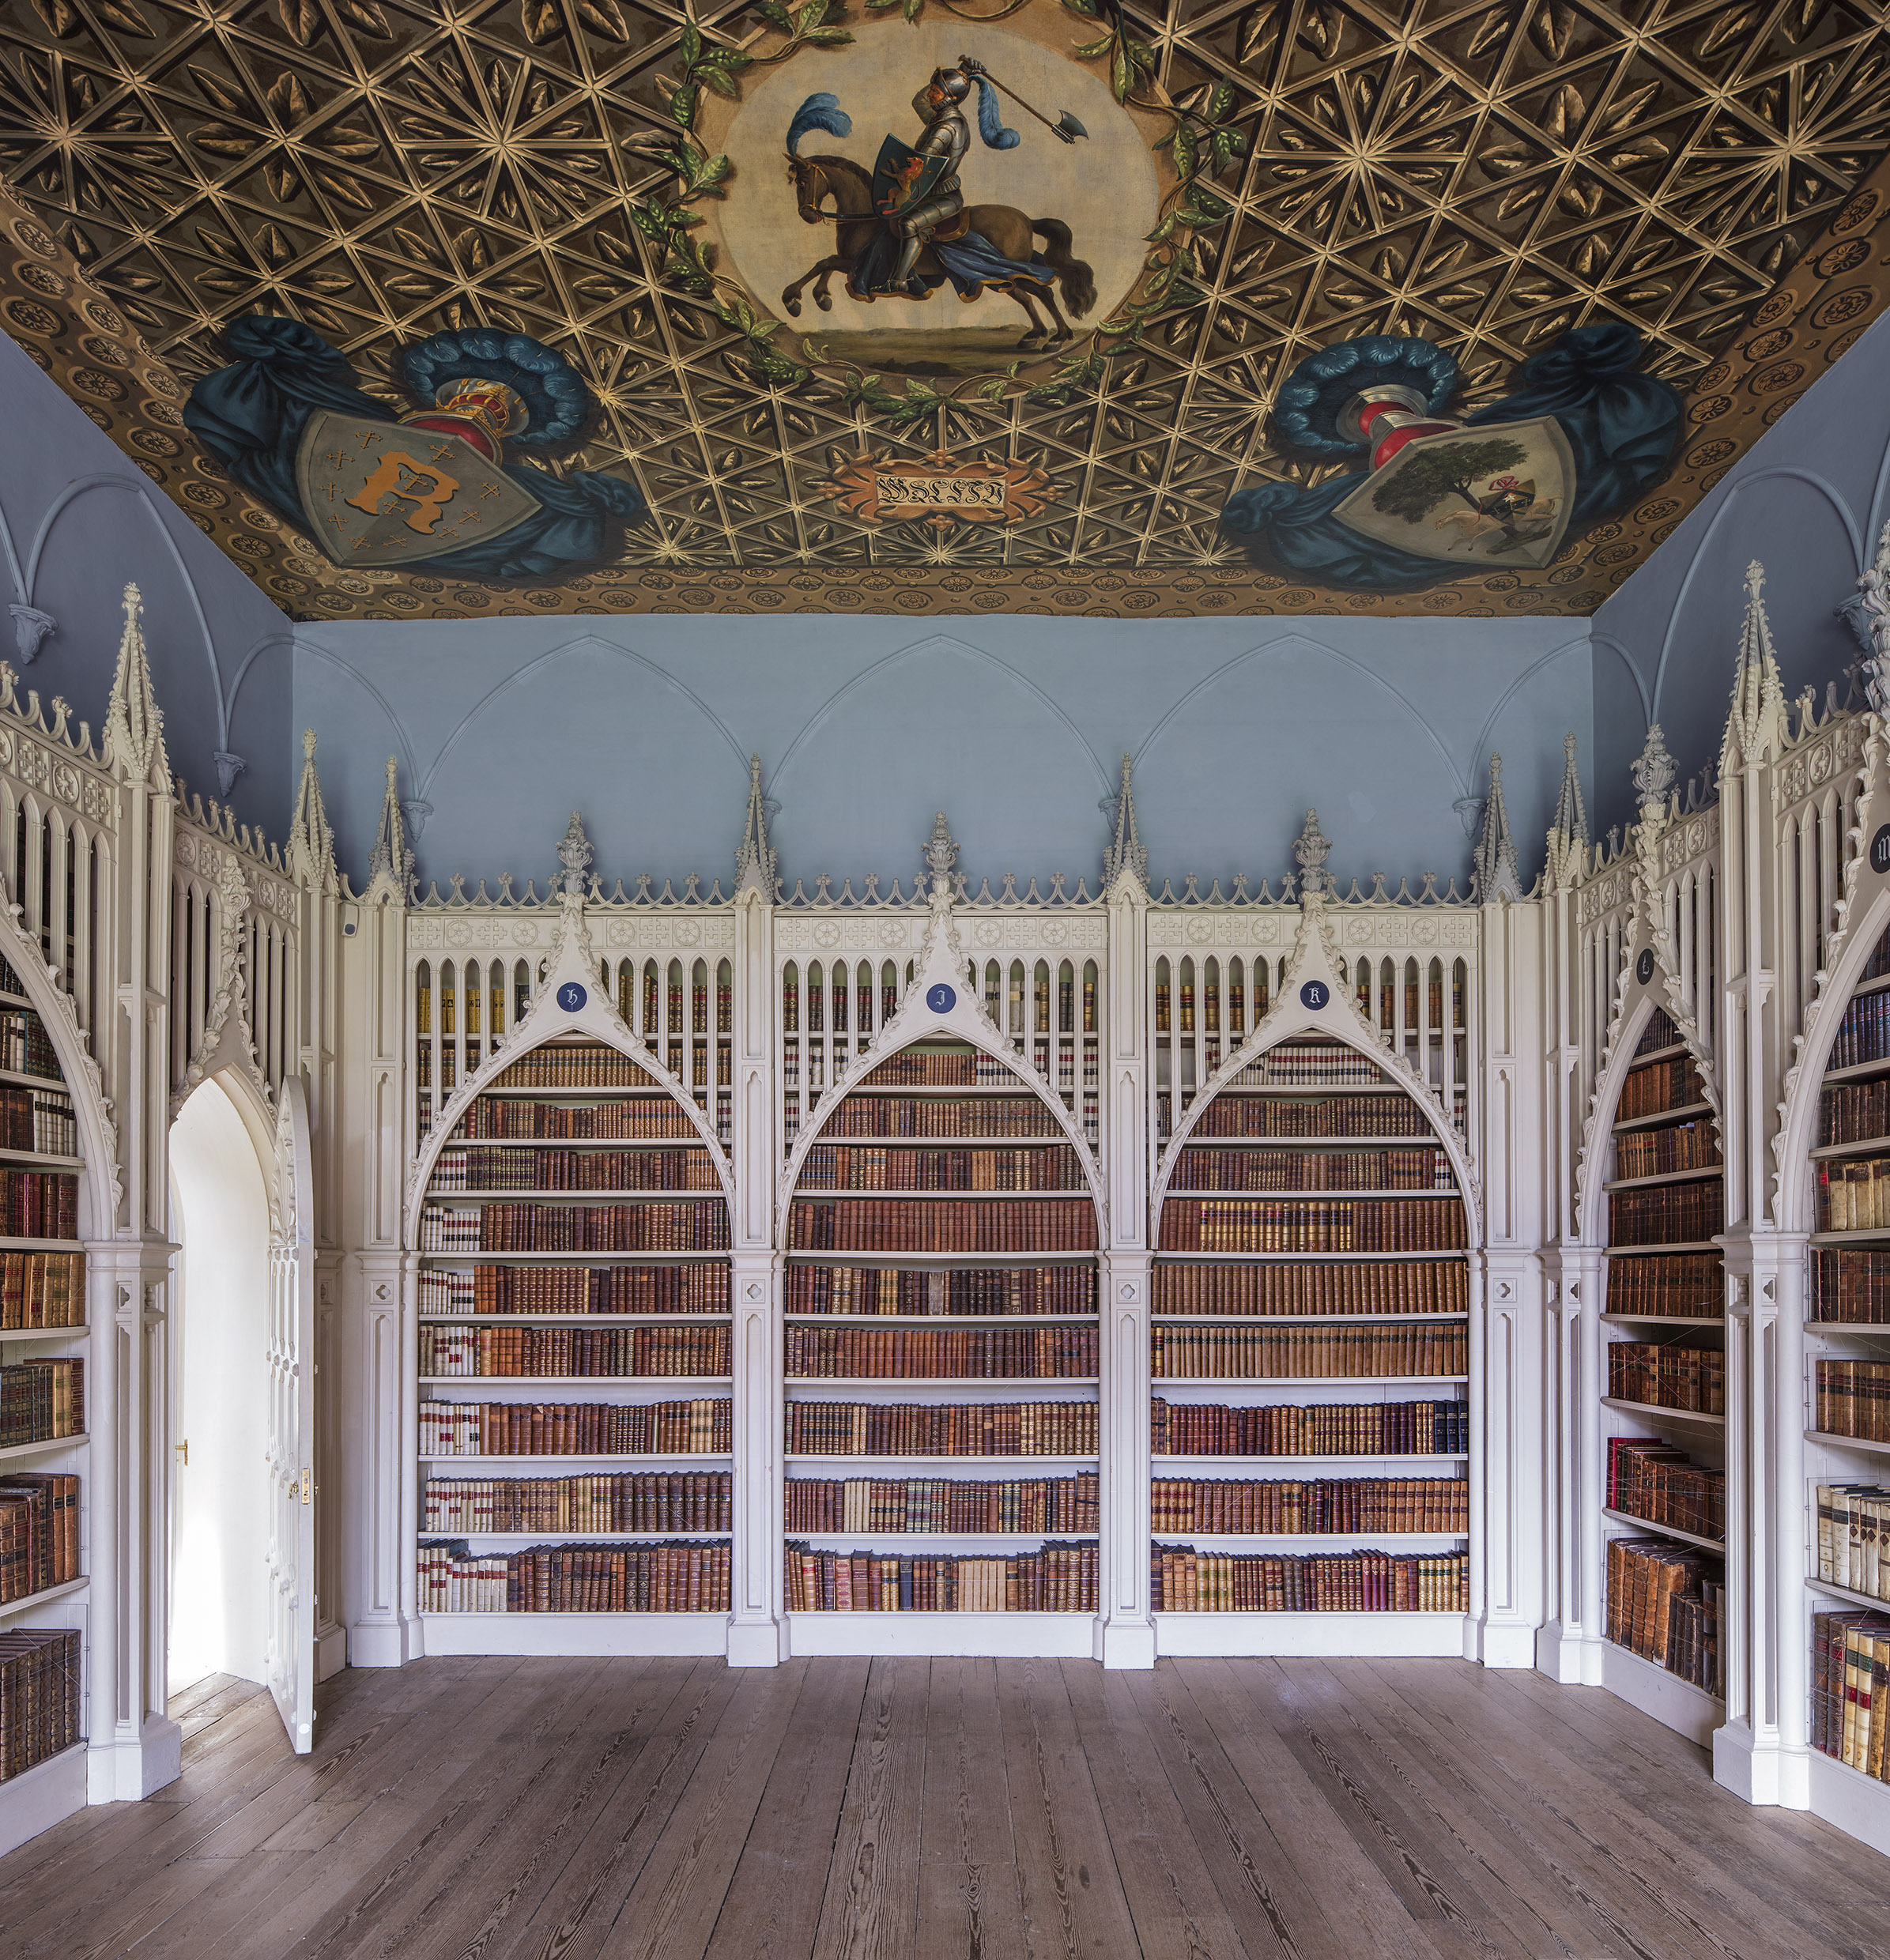 Horace Walpole's Library  Strawberry Hill, Twickenham, England